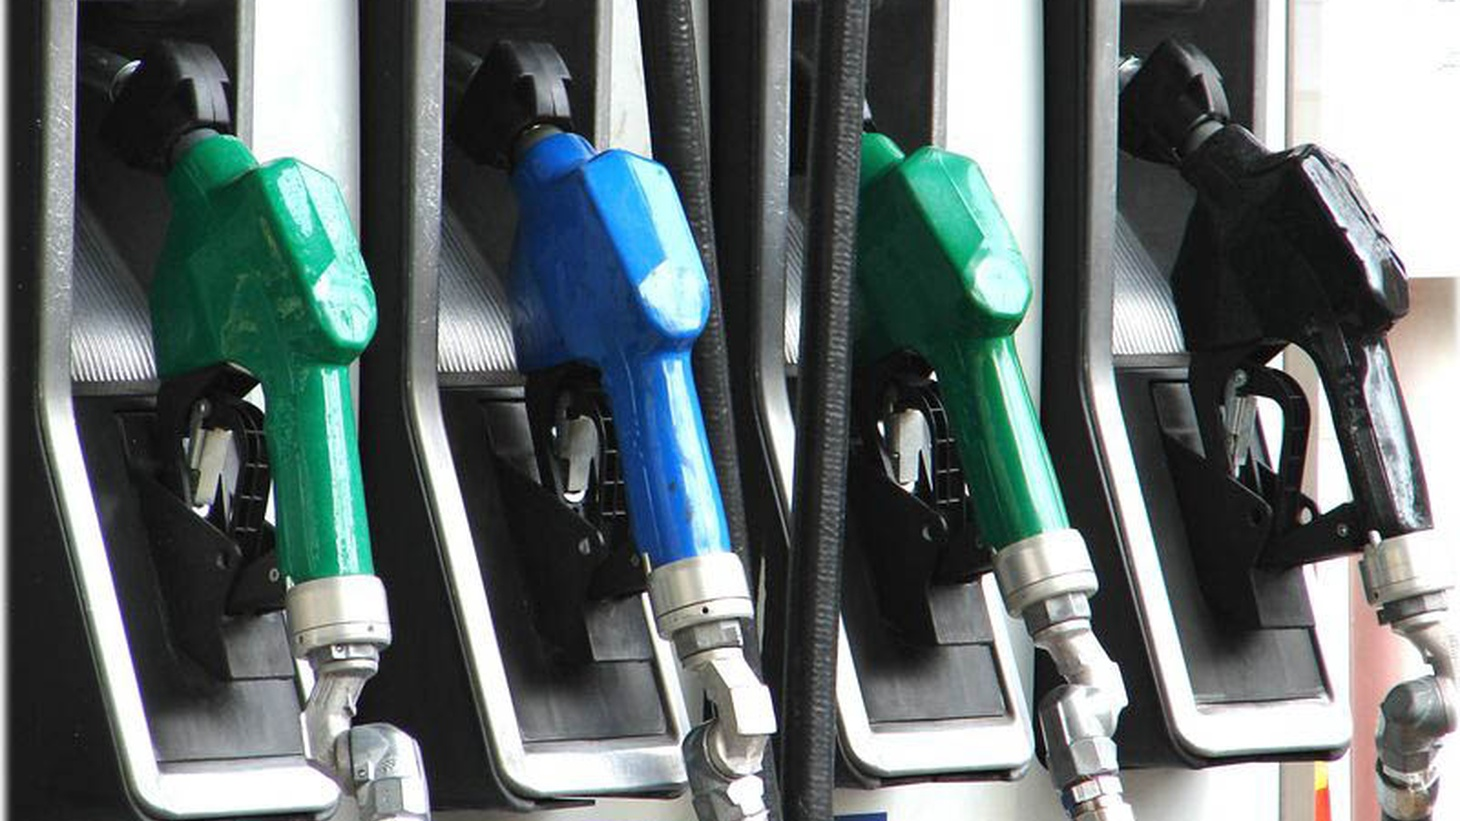 il prices have dipped below $60 a barrel, and gas prices at many stations here in L.A. are below $3 a gallon. What's going on? Are the Saudis trying to drive U.S. oil producers out of the market? How are the falling prices affecting local oil production here in L.A?